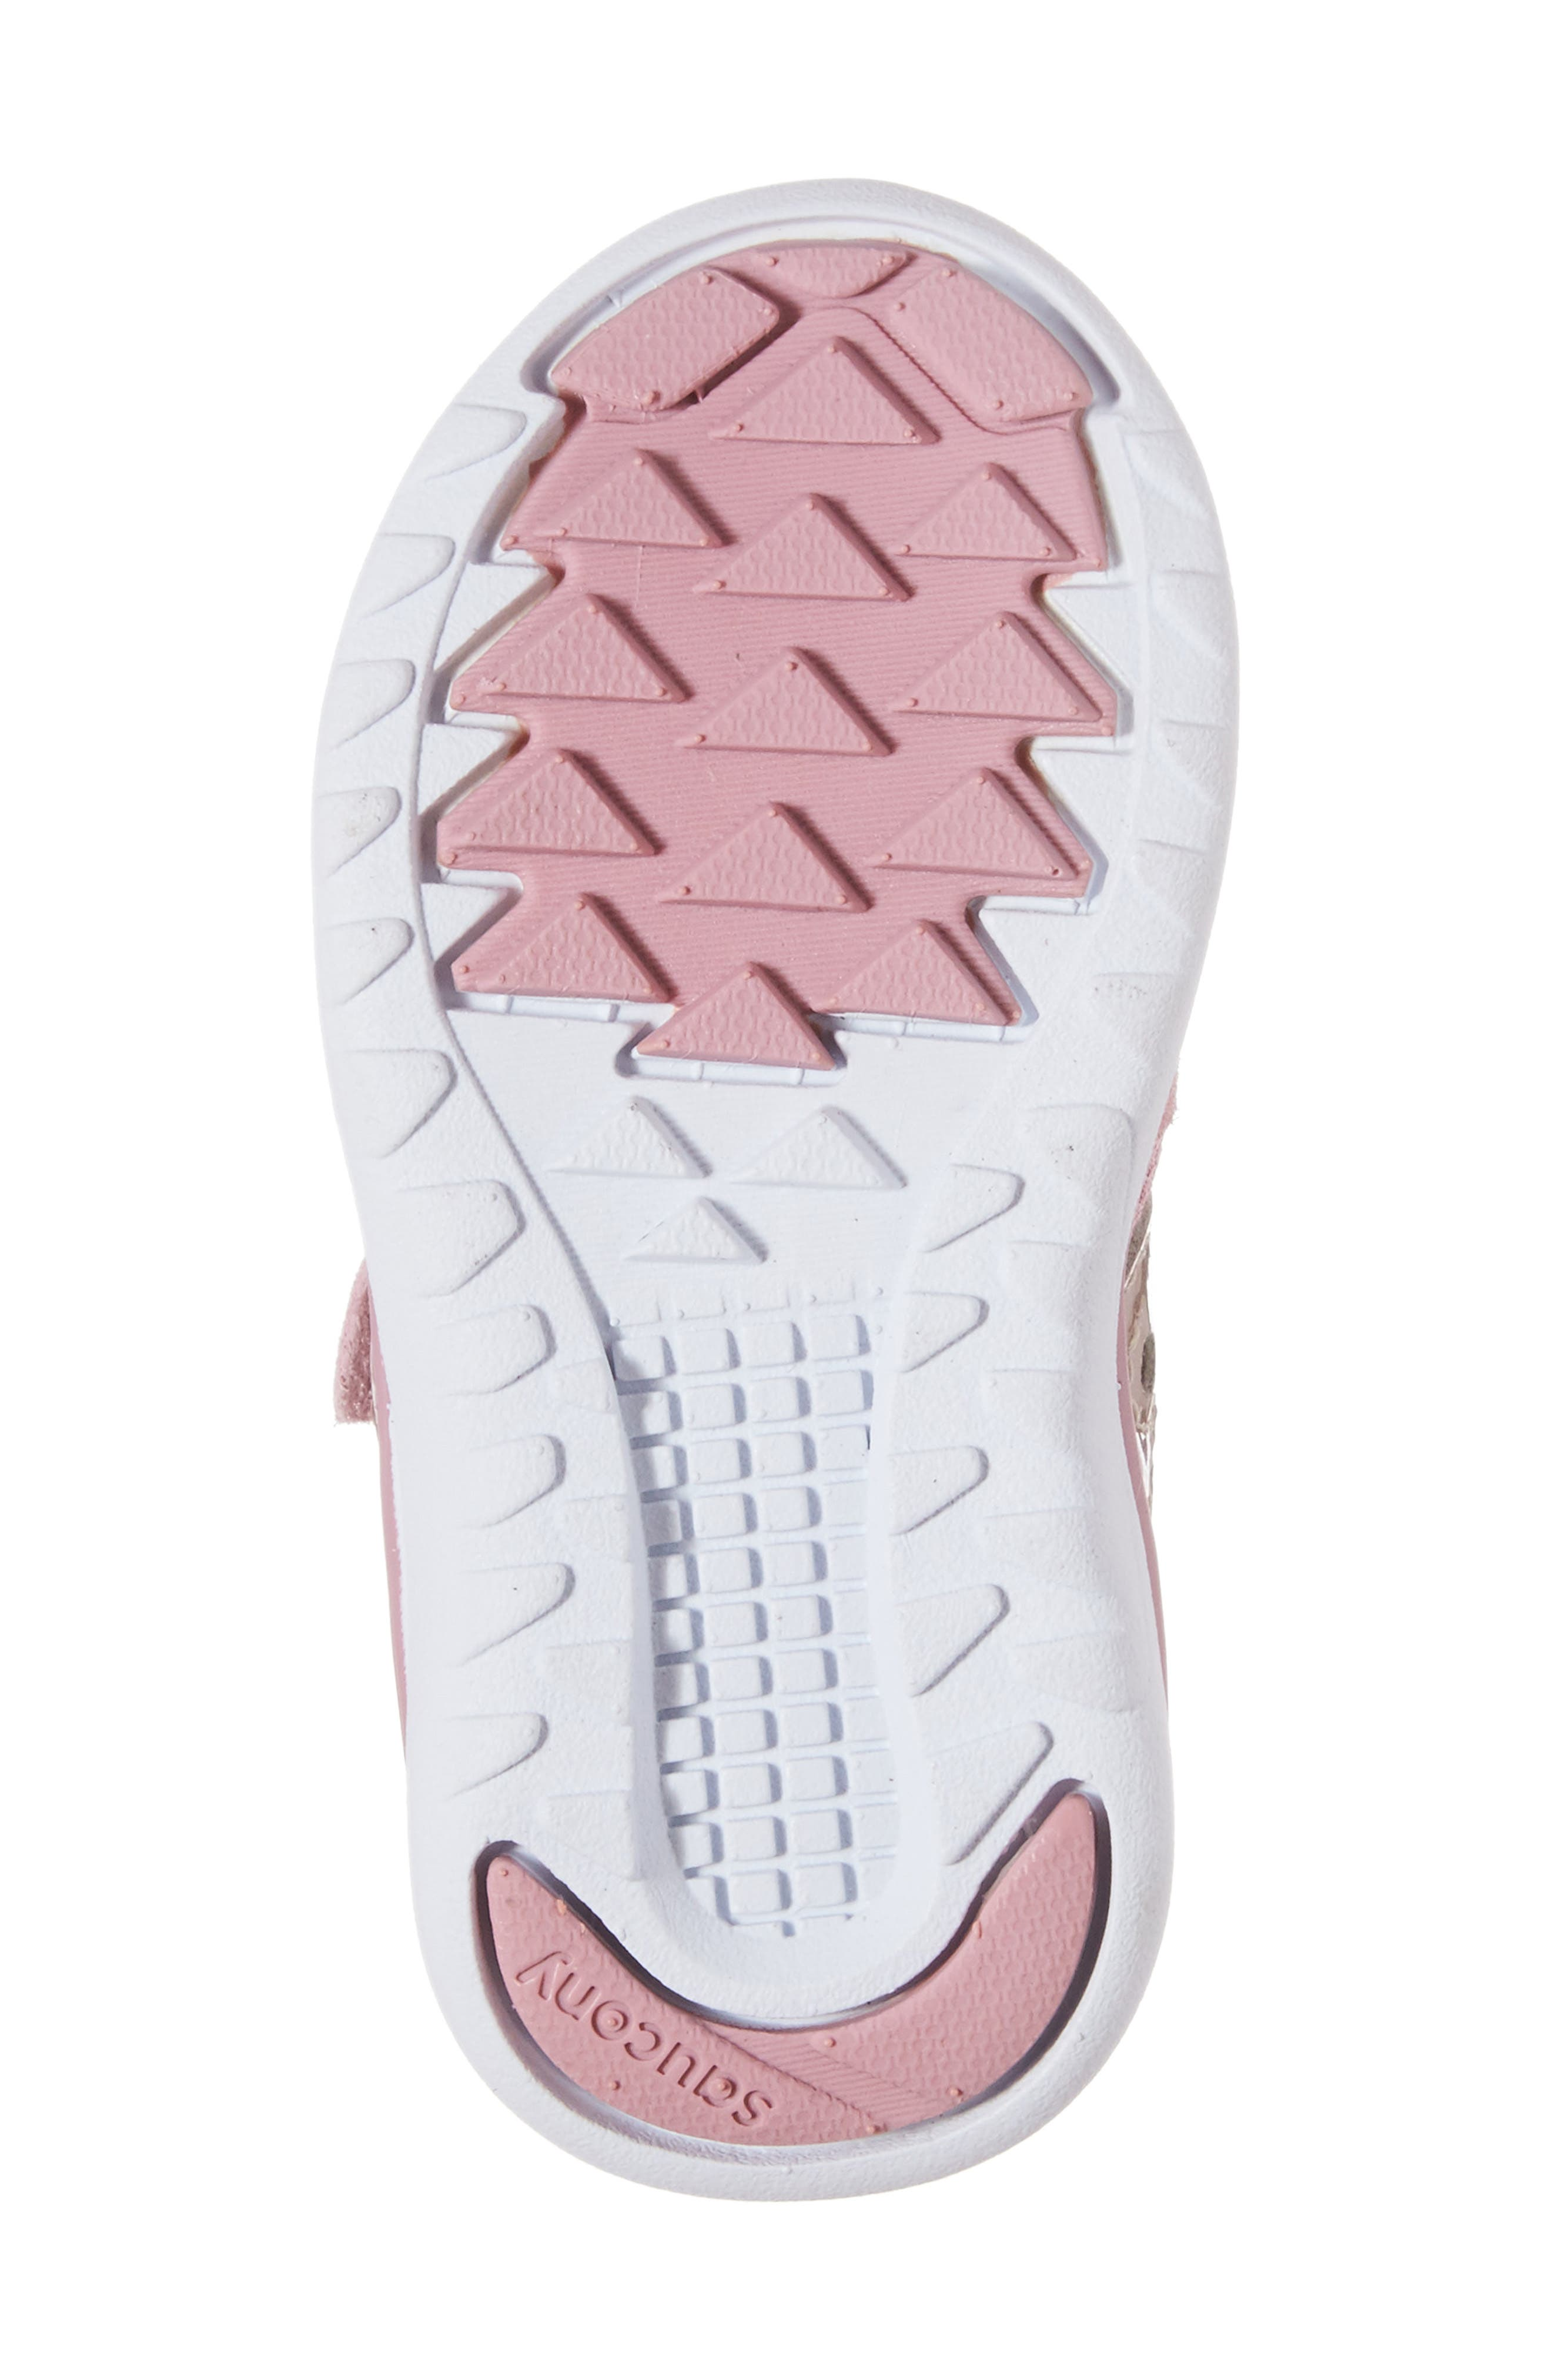 Jazz Lite Sneaker,                             Alternate thumbnail 6, color,                             BLUSH METALLIC